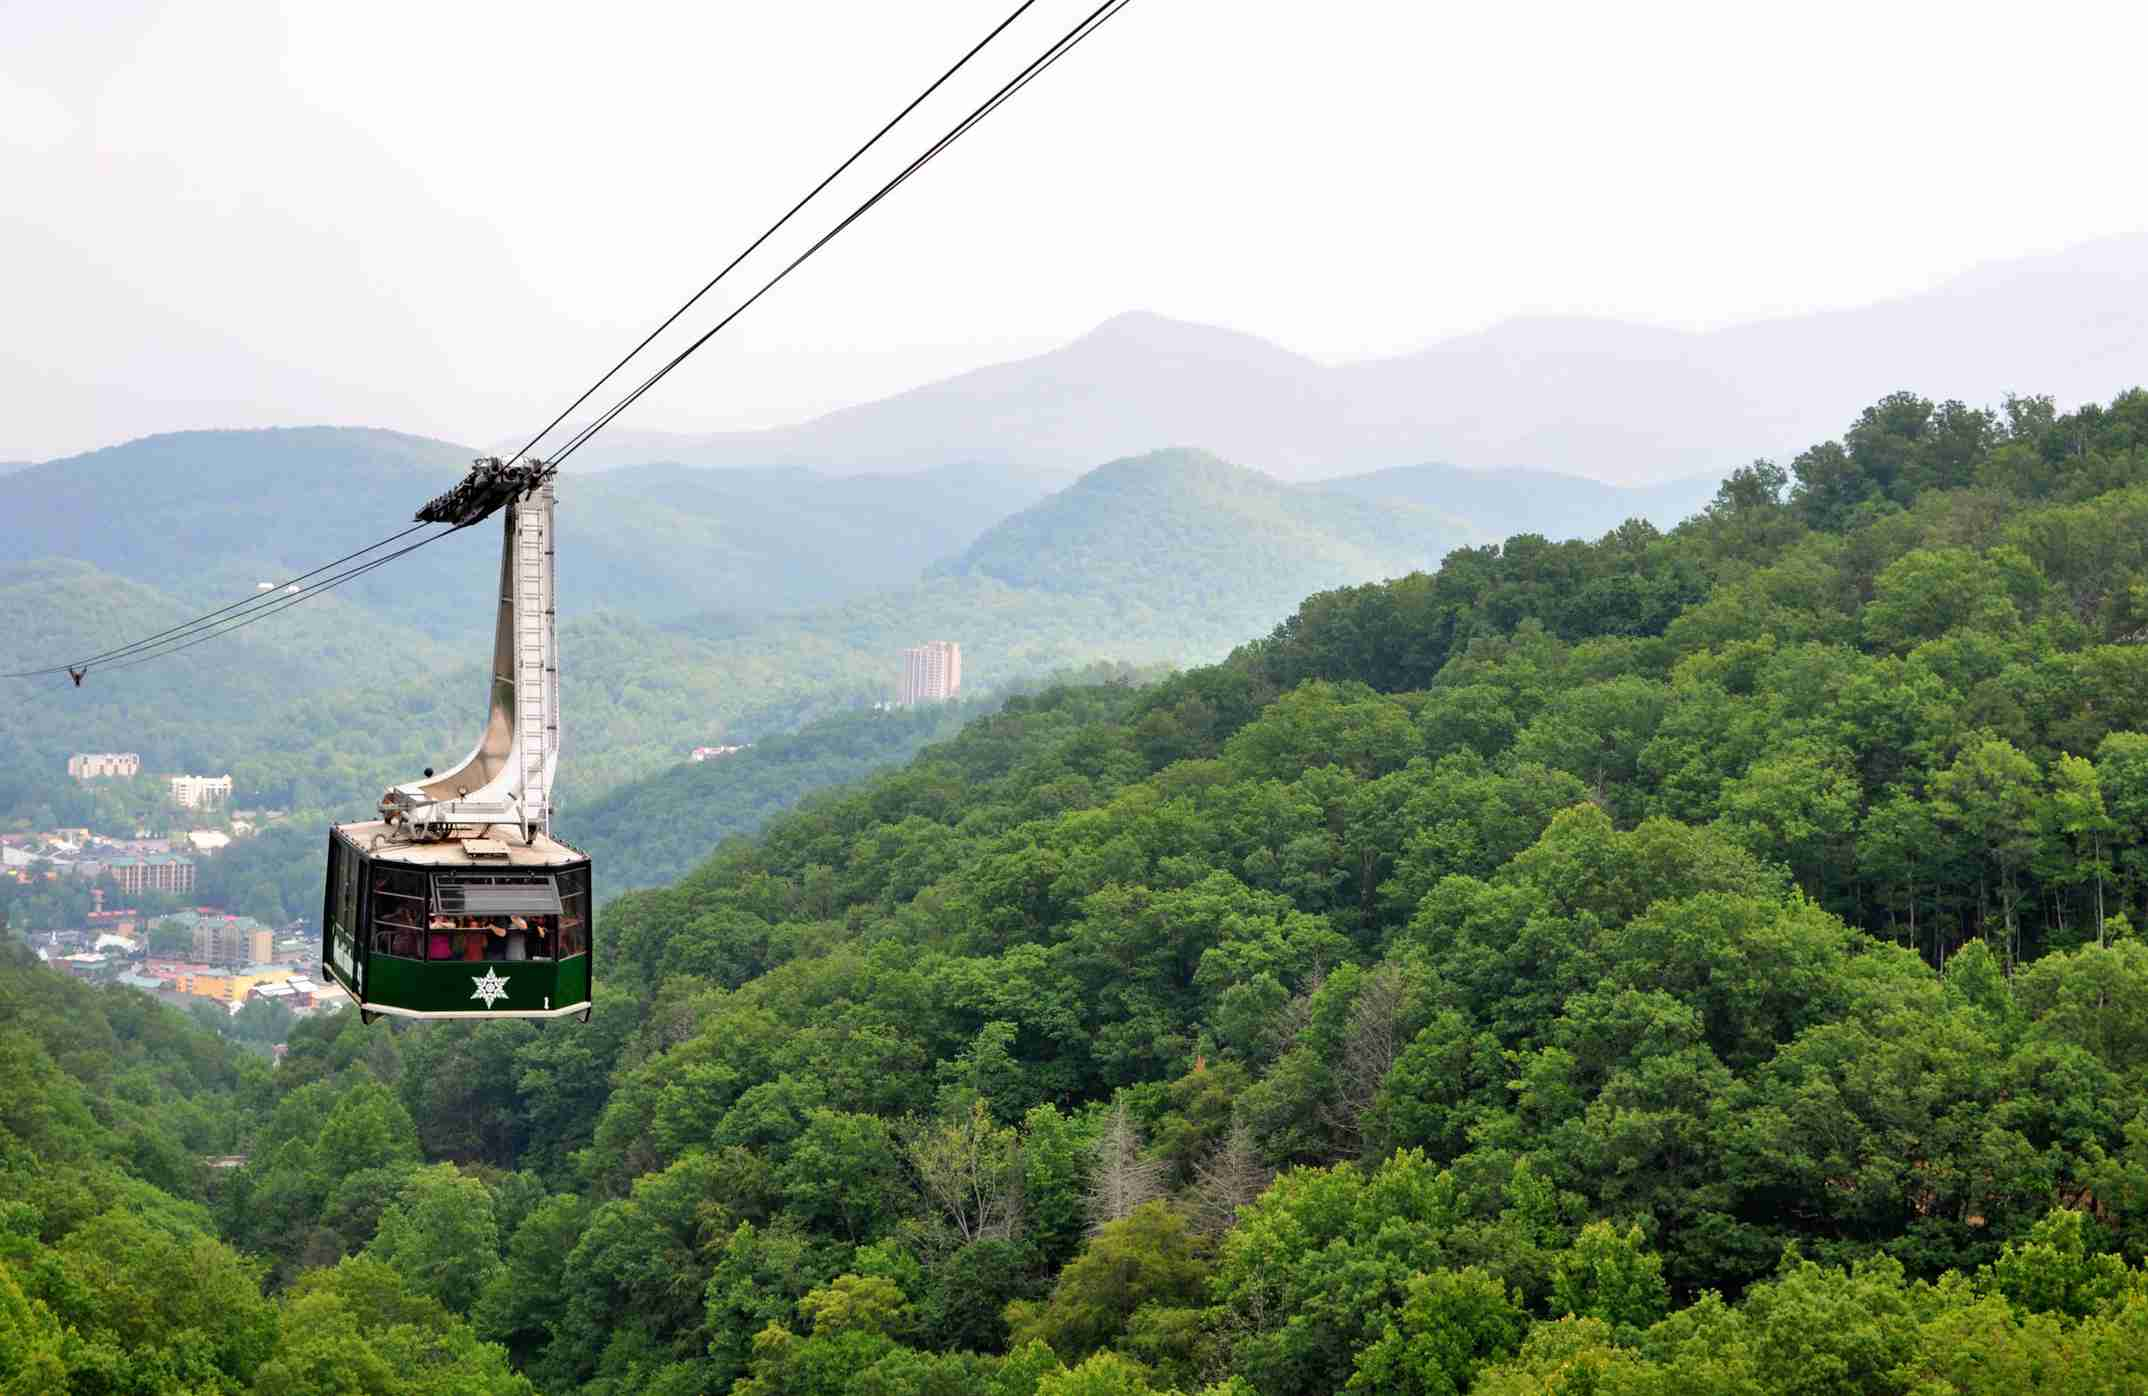 Tourists riding the scenic gondola cable car at Ober Gatlinburg in Tennessee